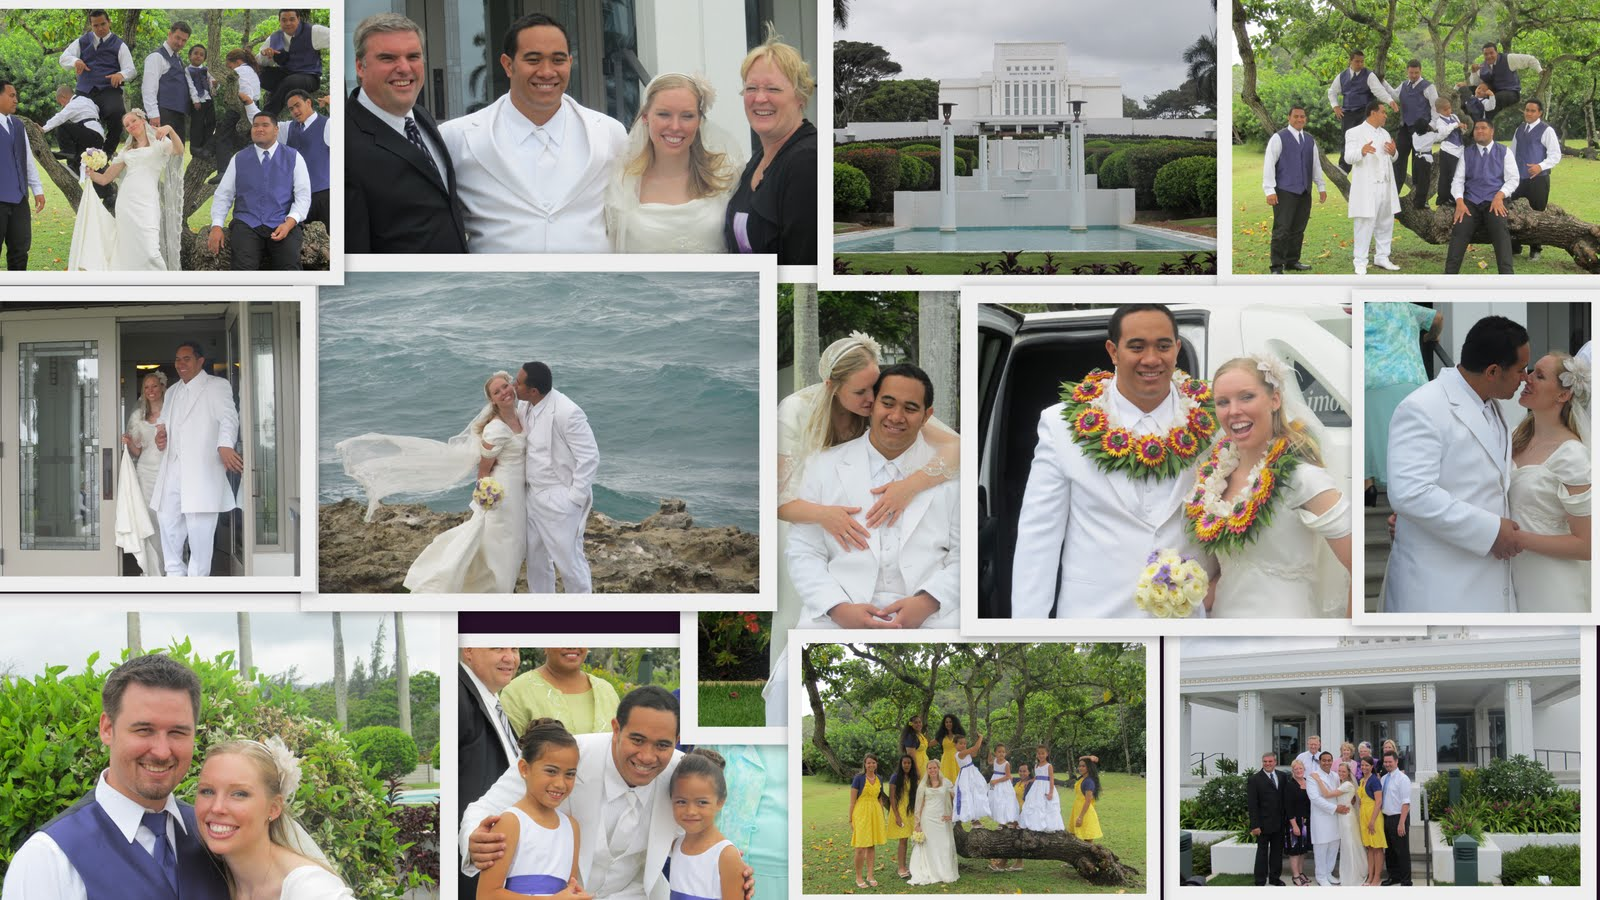 Tonga Traditional Wedding Dress http://believinginsomething.blogspot.com/2011/05/mahalo.html